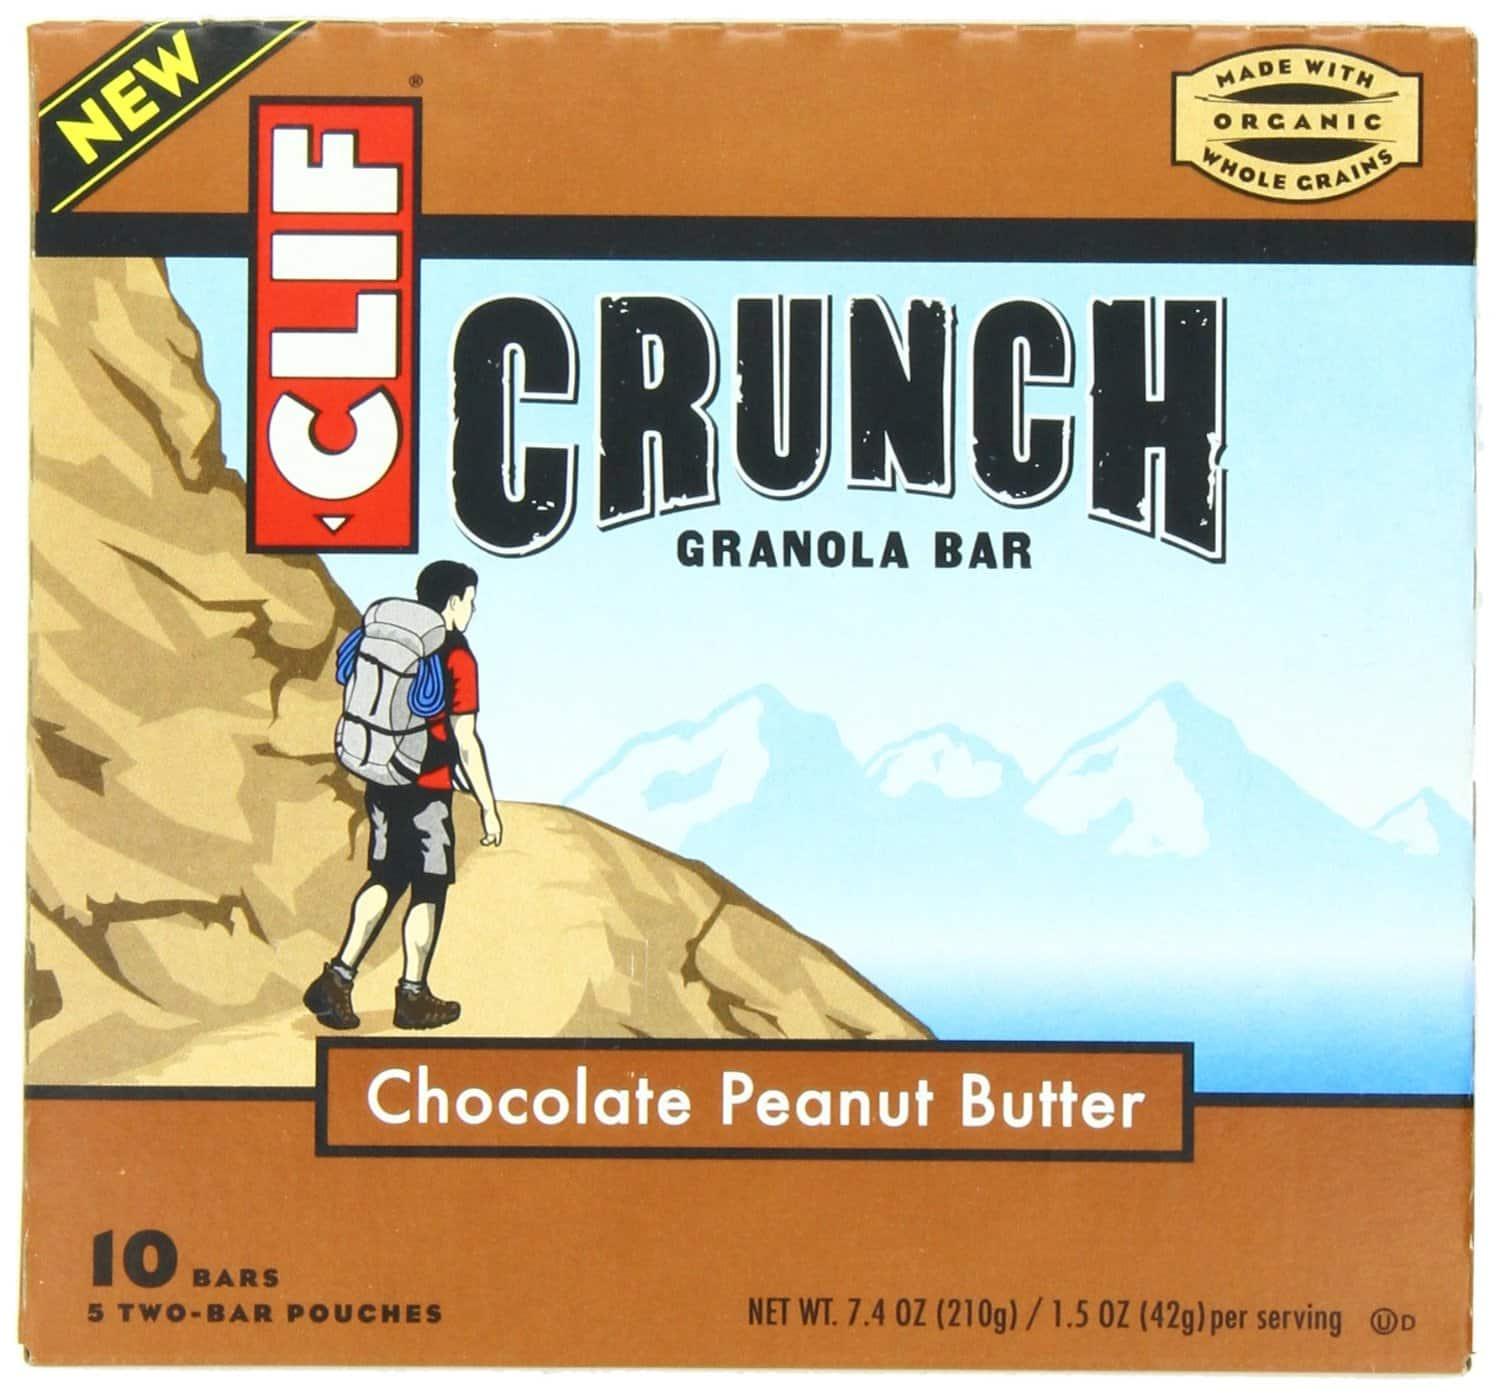 Cliff Crunch Bars 10-Count Box - Chocolate Peanut Butter or Peanut Butter for $2.83 or $2.84 or less w/S&S